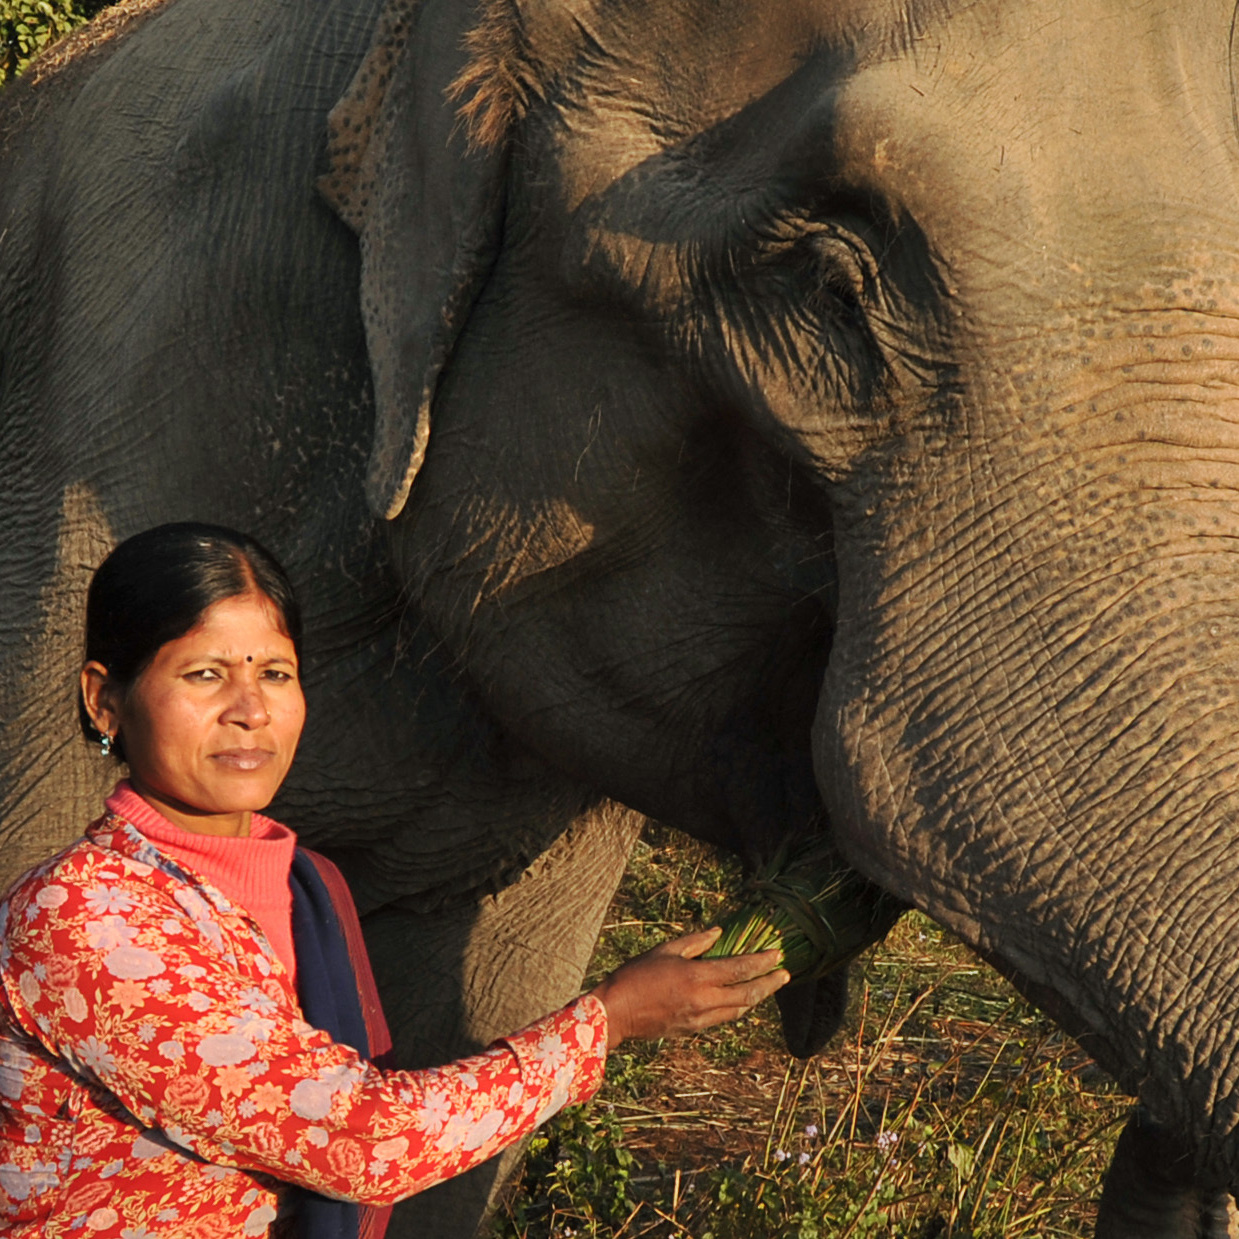 A Nepalese mahout feeds an elephant at Sauraha in Chitwan, southwest of Kathmandu.